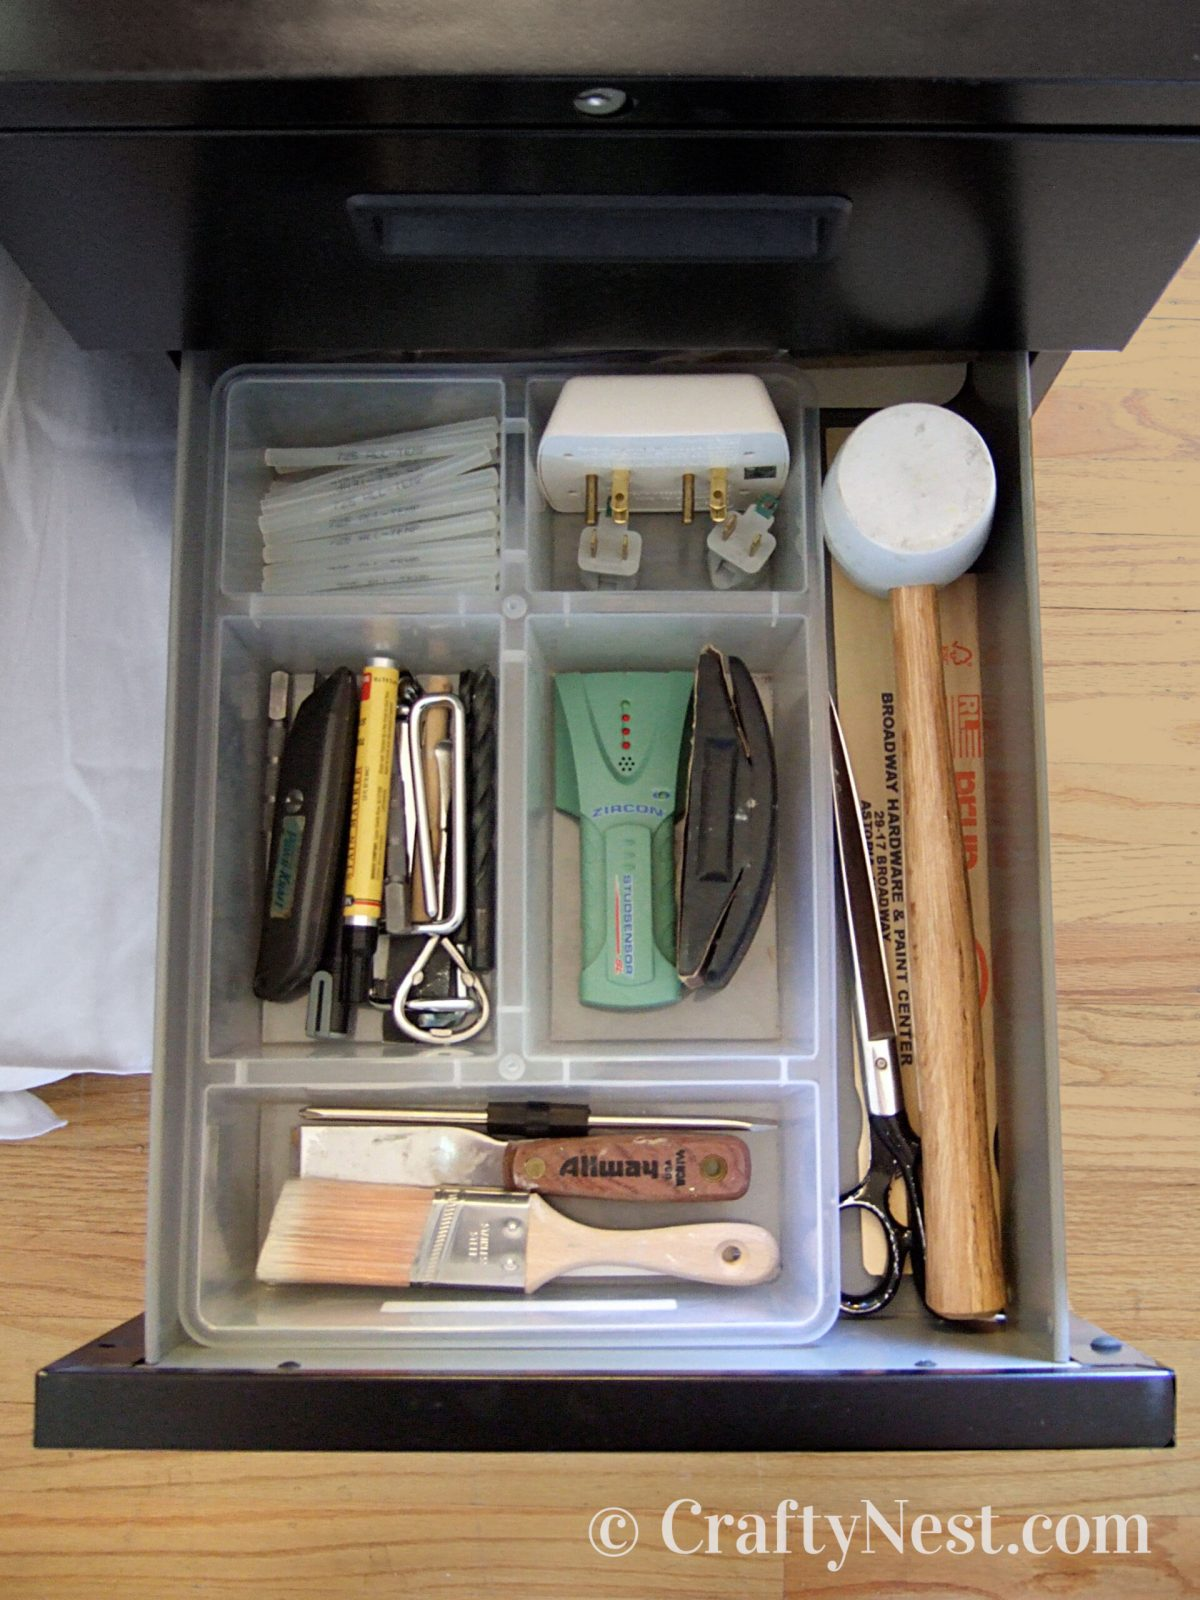 Open file cabinet drawer with tools organized inside, photo